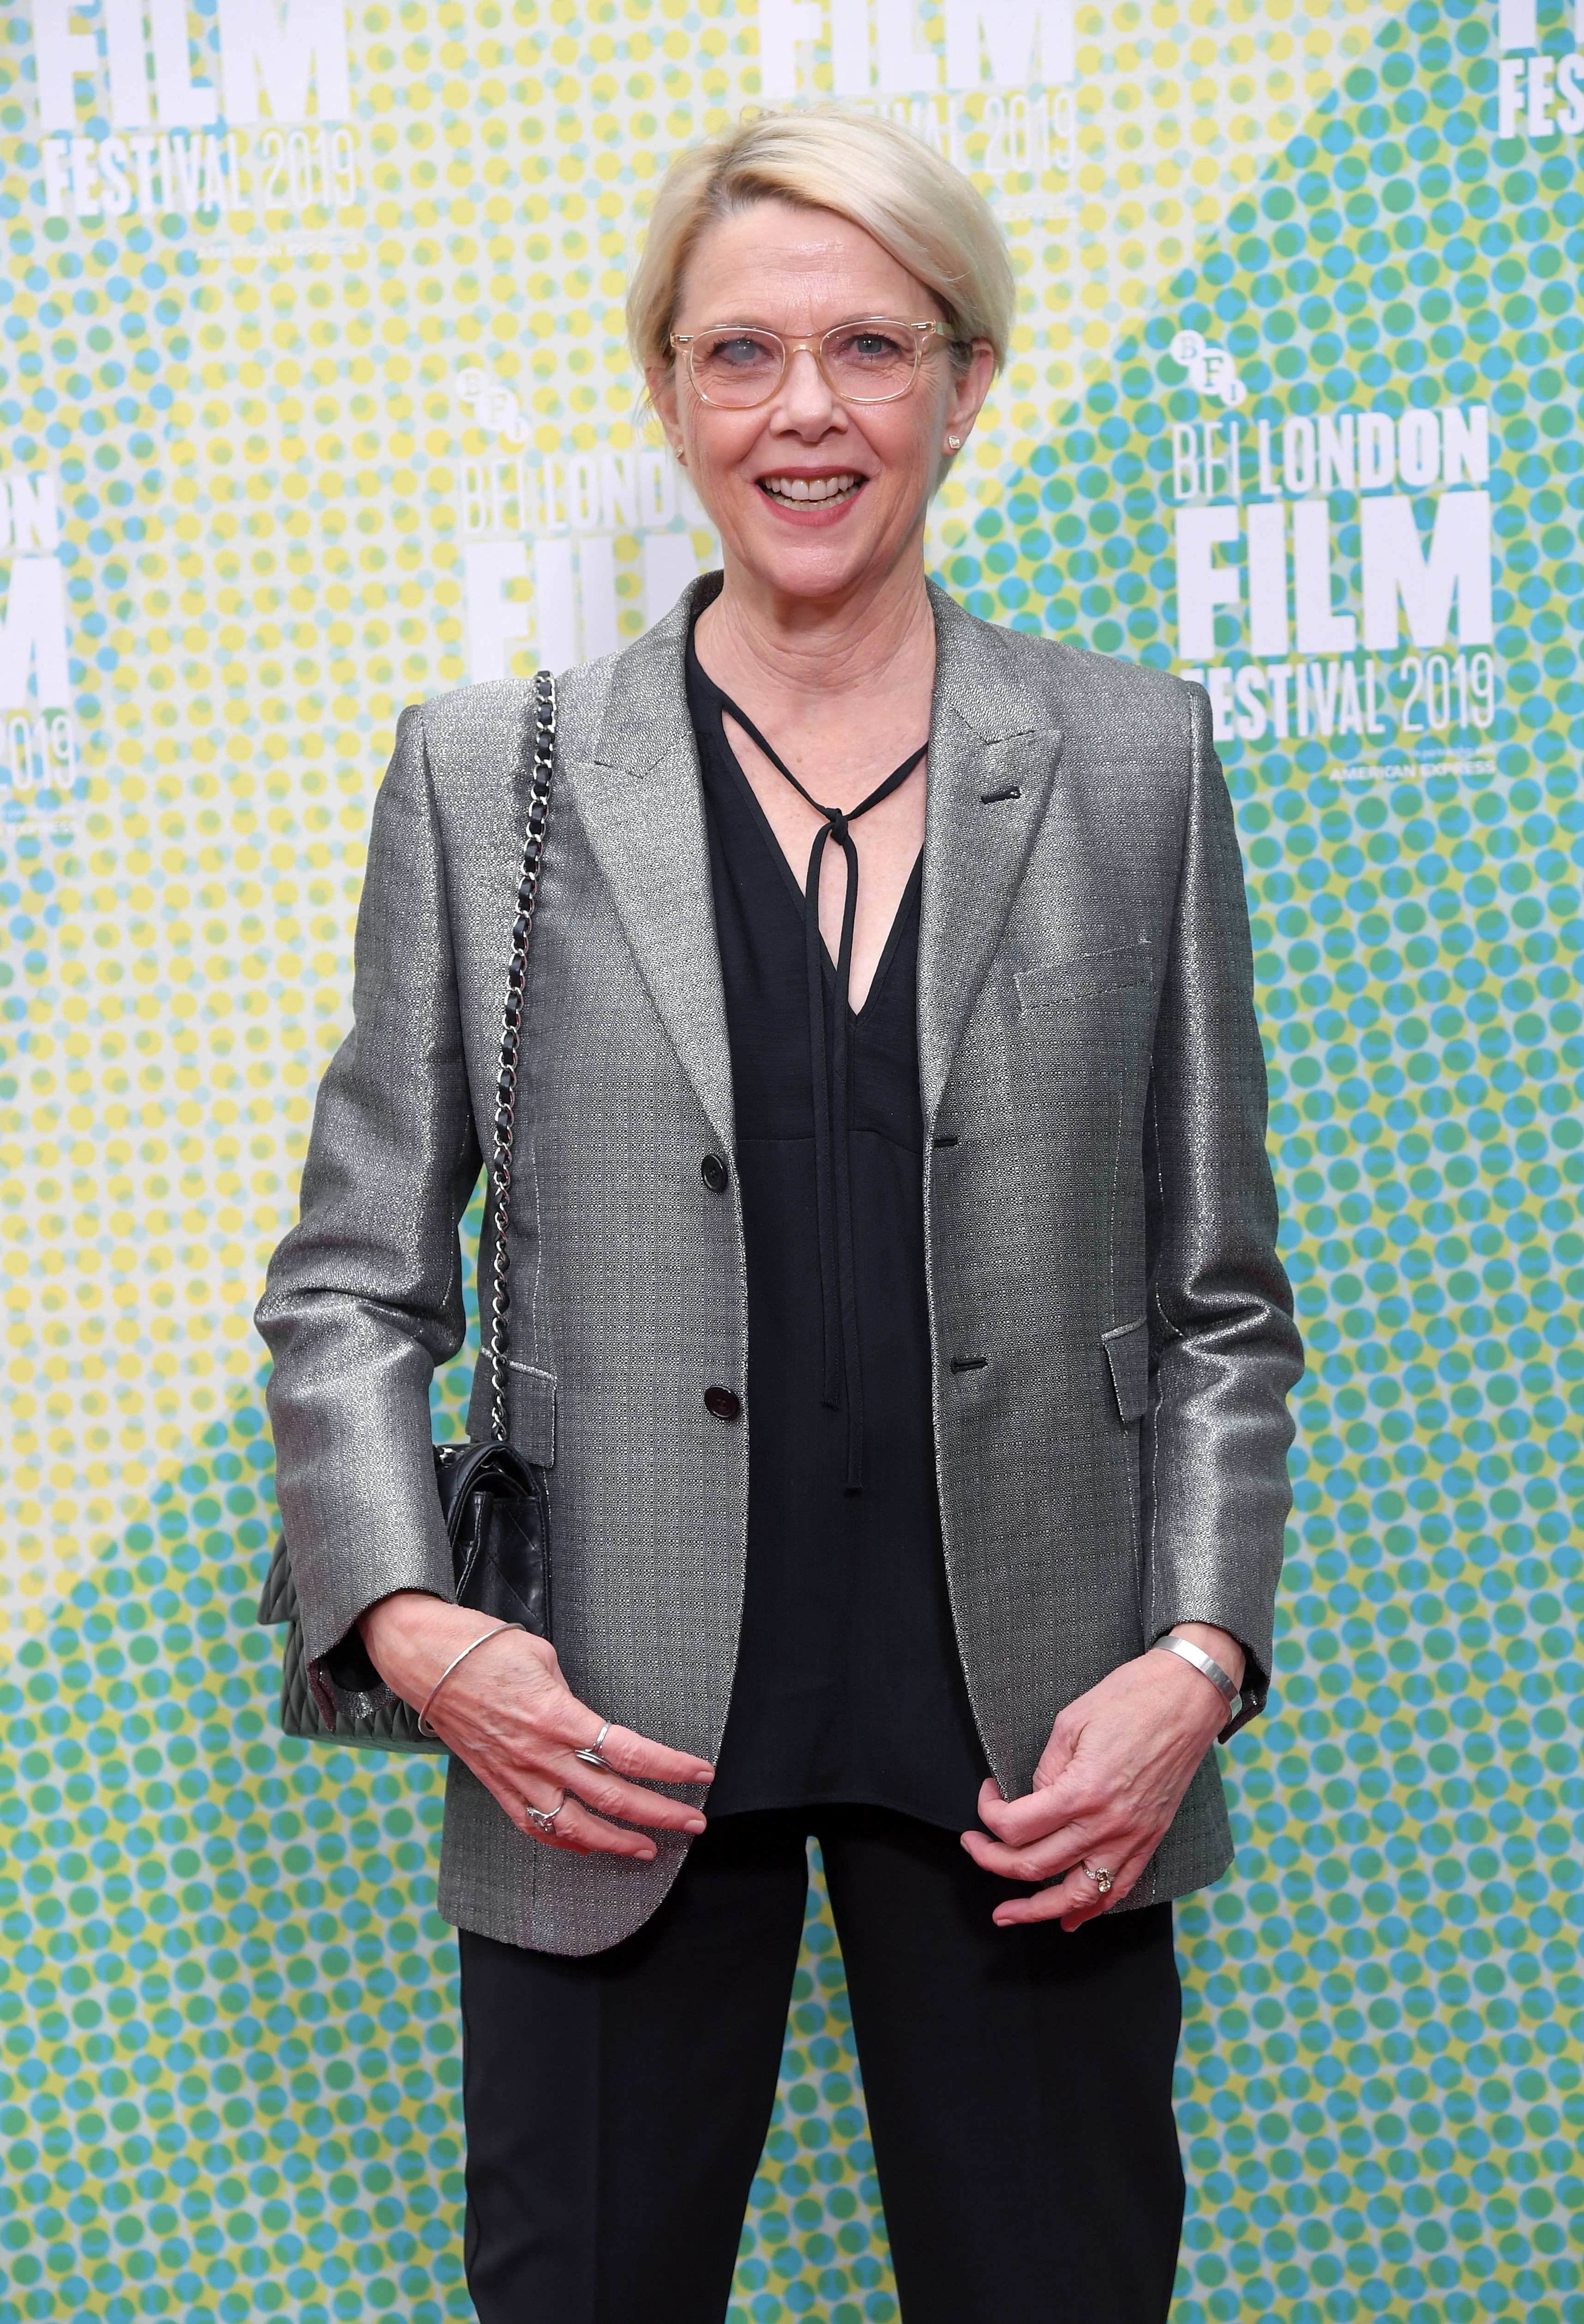 Annette Bening at an event for The Report (2019)